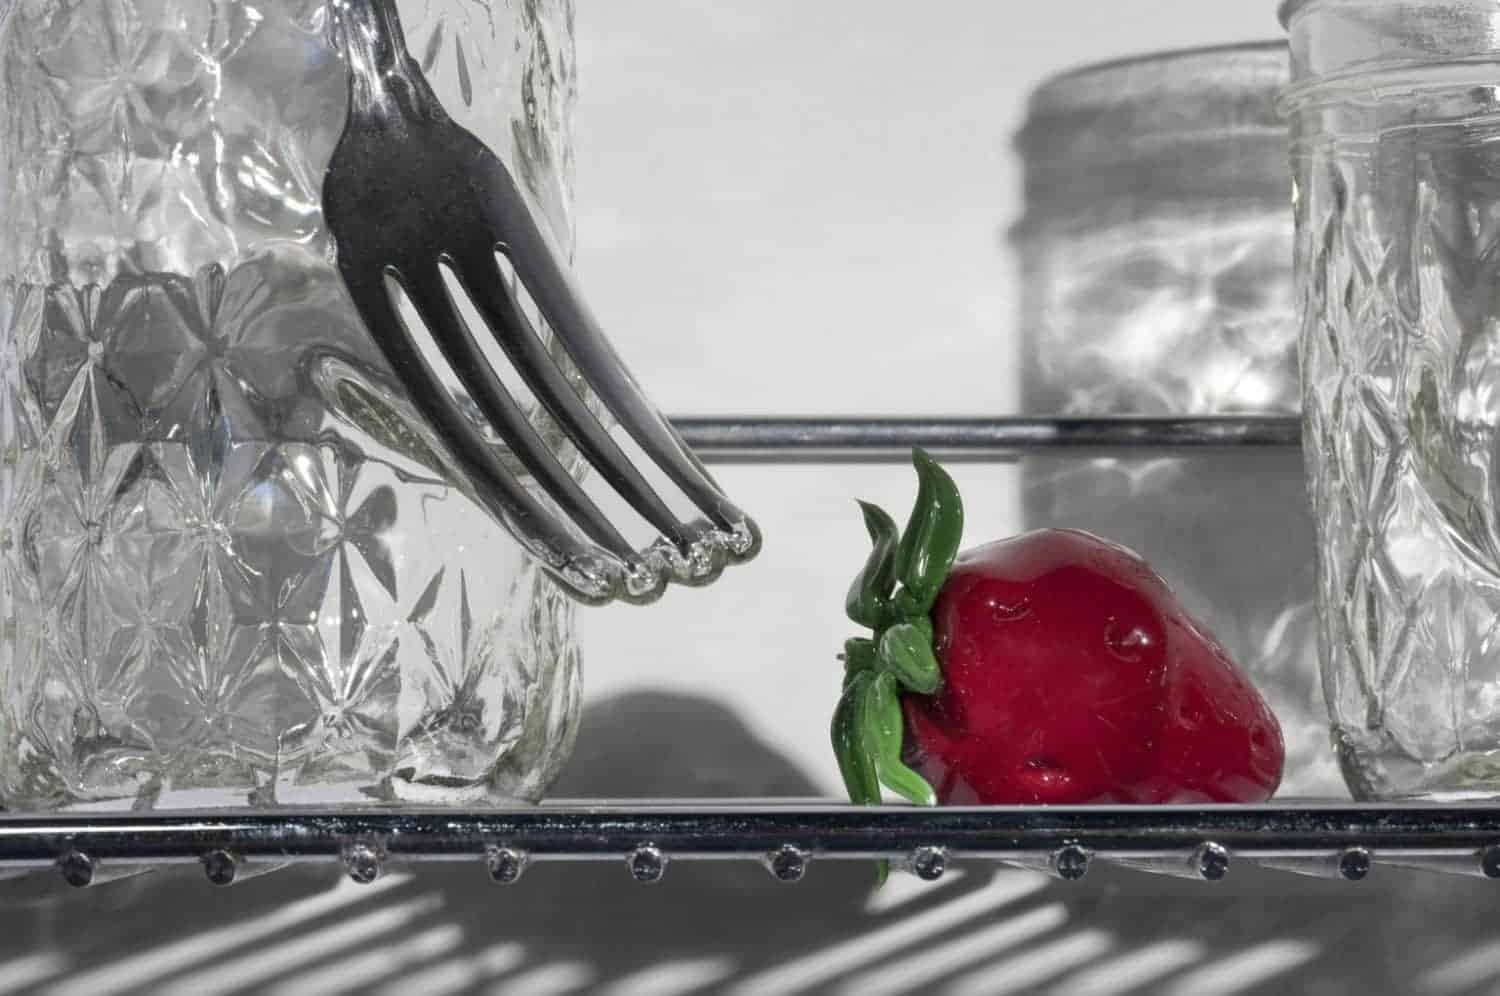 """Detail of """"From small beginnings come great things,"""" Jelly jars, cutlery, flame worked glass, stainless steel, 12 x 16 x 6 inches, photo credit: Elizabeth Torgerson-Lamark"""